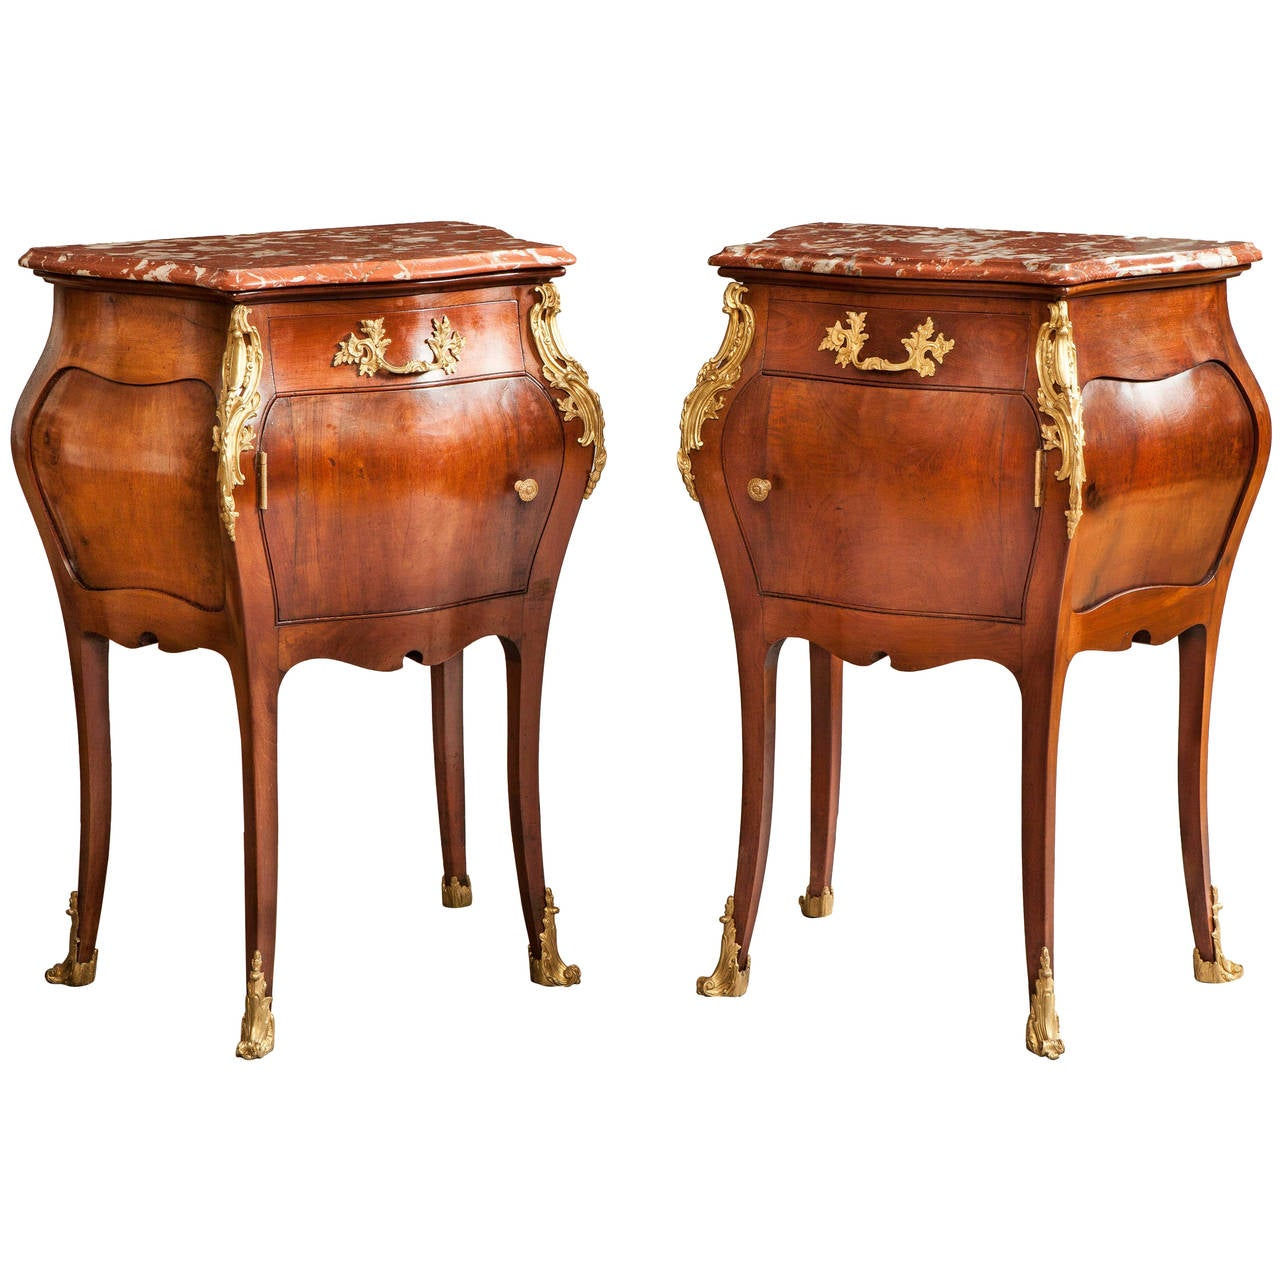 Pair of French Mahogany, Gilt and Marble Topped Side Cabinets, 19th Century